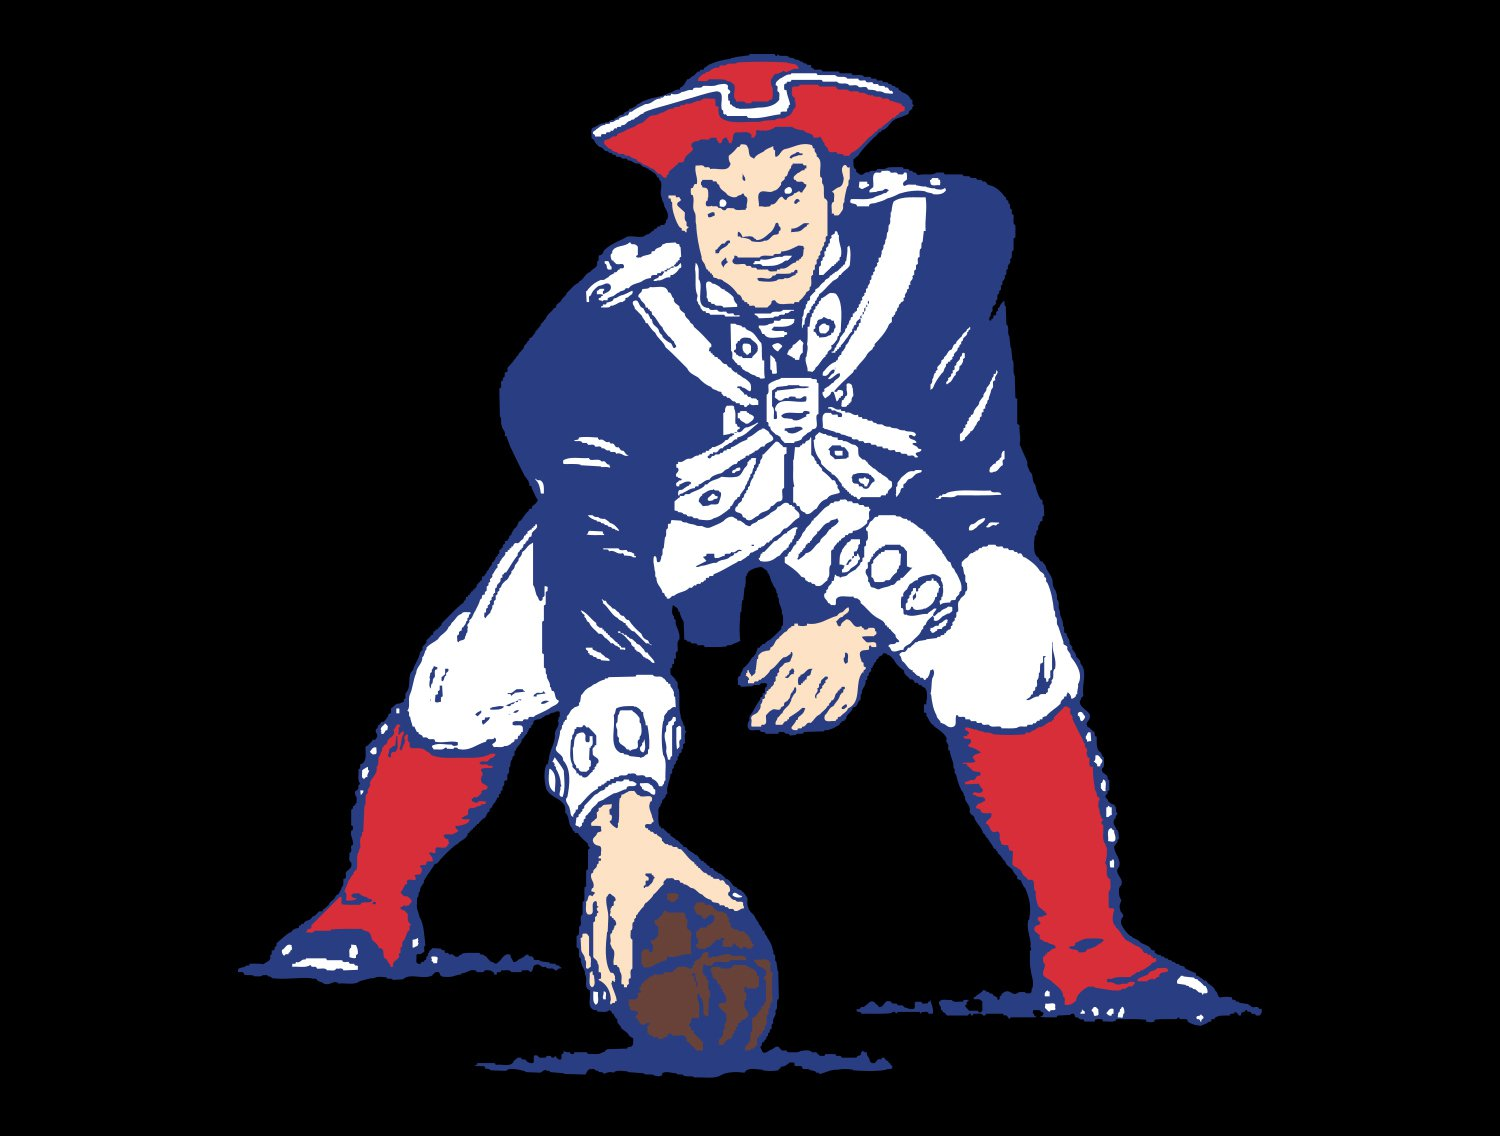 Meaning New England Patriots logo and symbol.